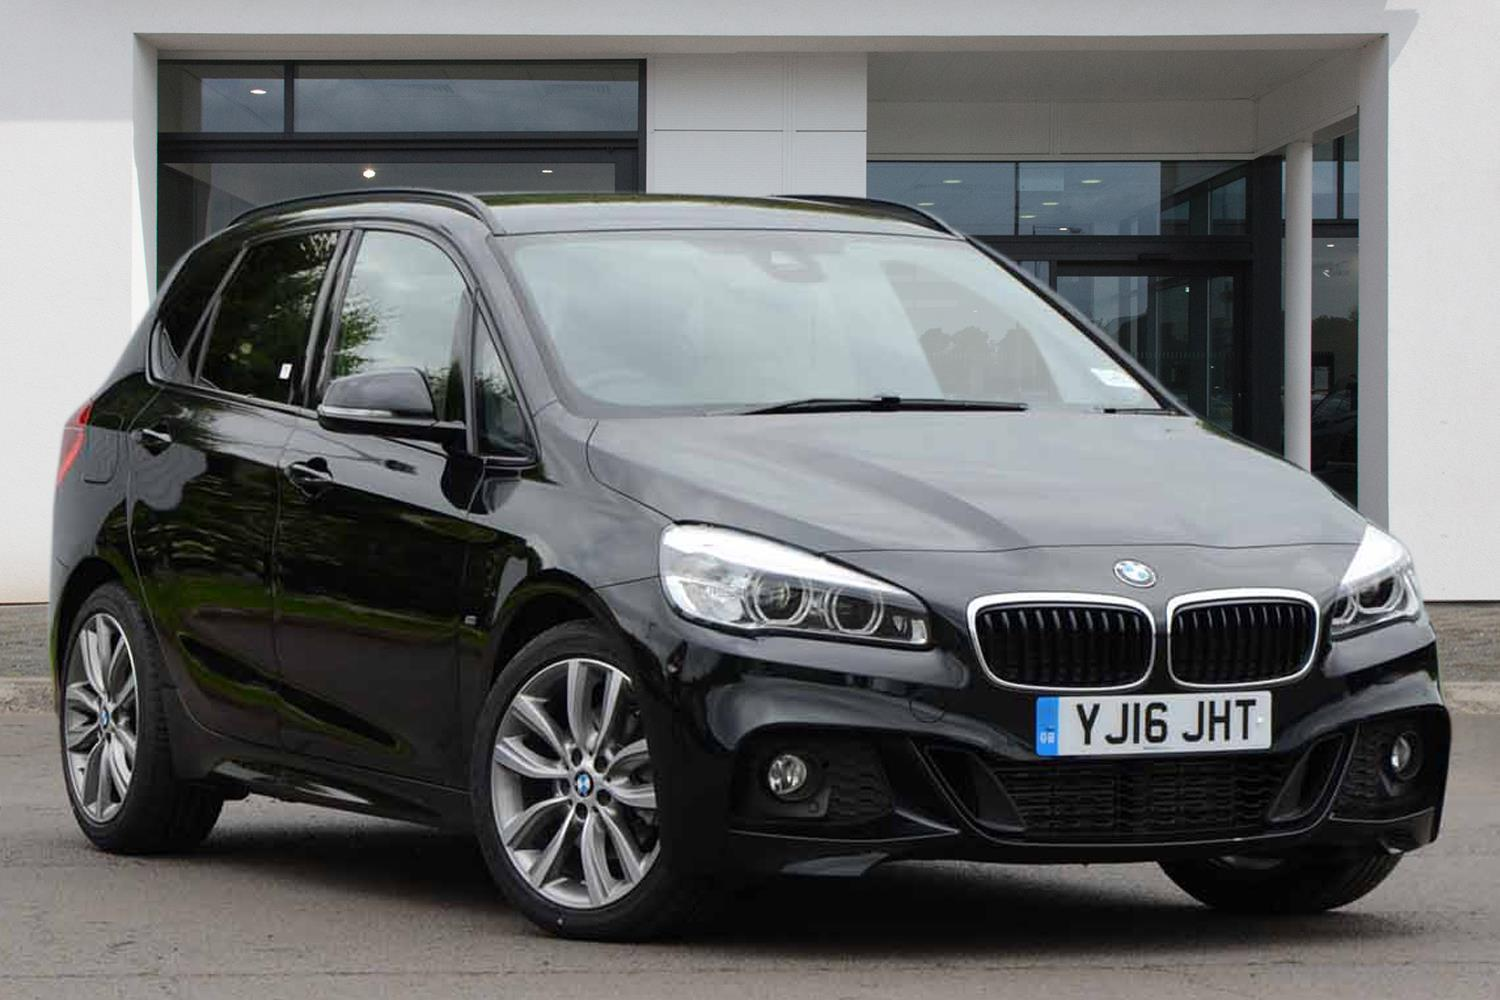 BMW 2 Series Active Tourer 5-Door YJ16JHT - Image 2